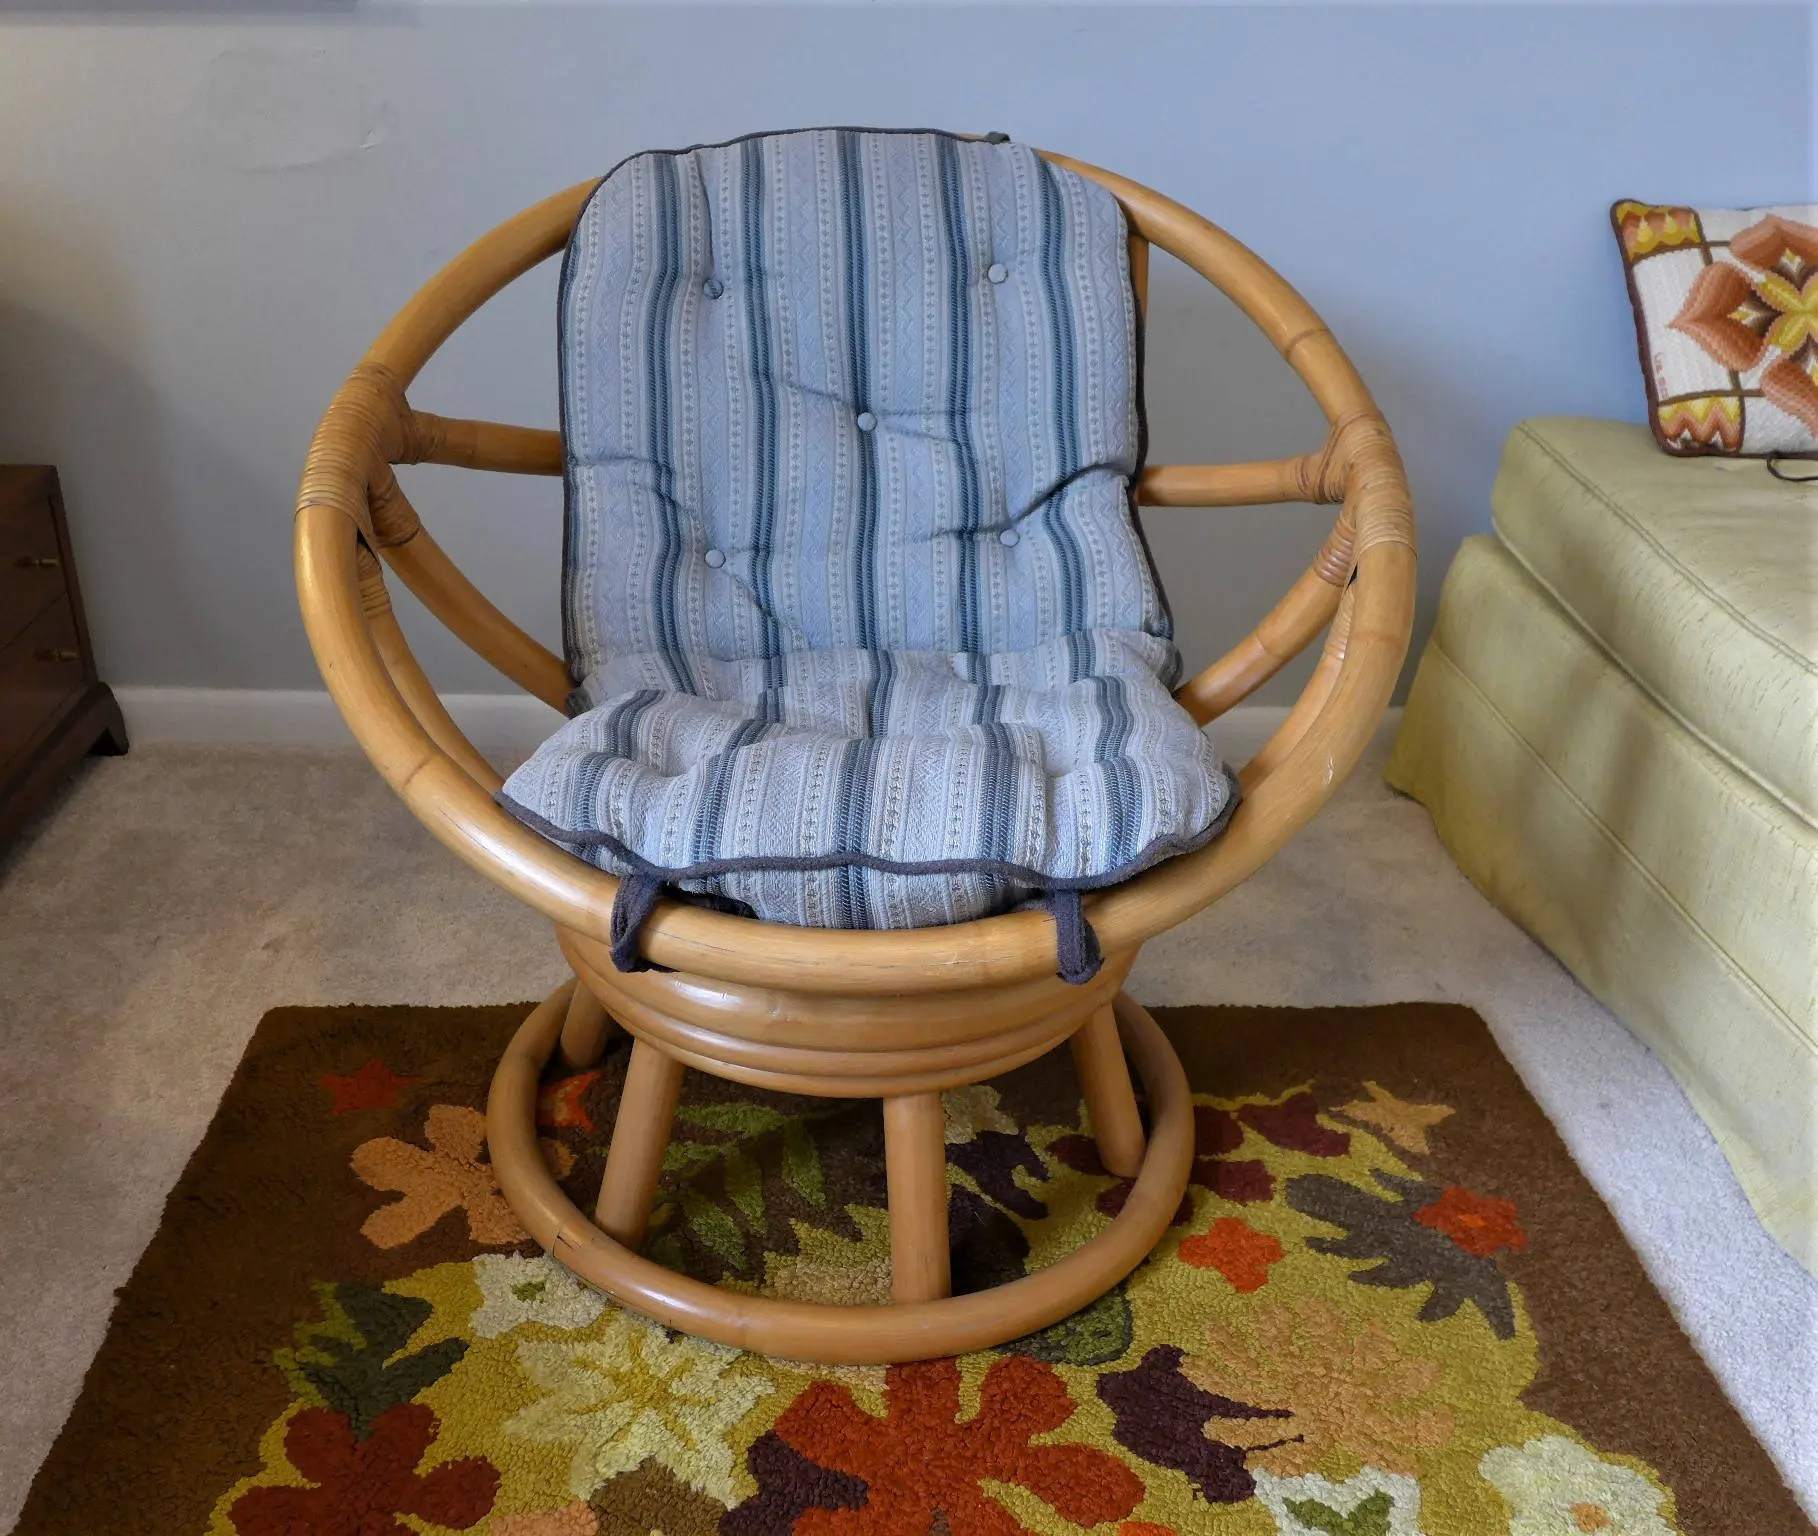 comfortable swivel chair covers for bed bugs vintage bamboo with blue cushion mid century etsy image 0